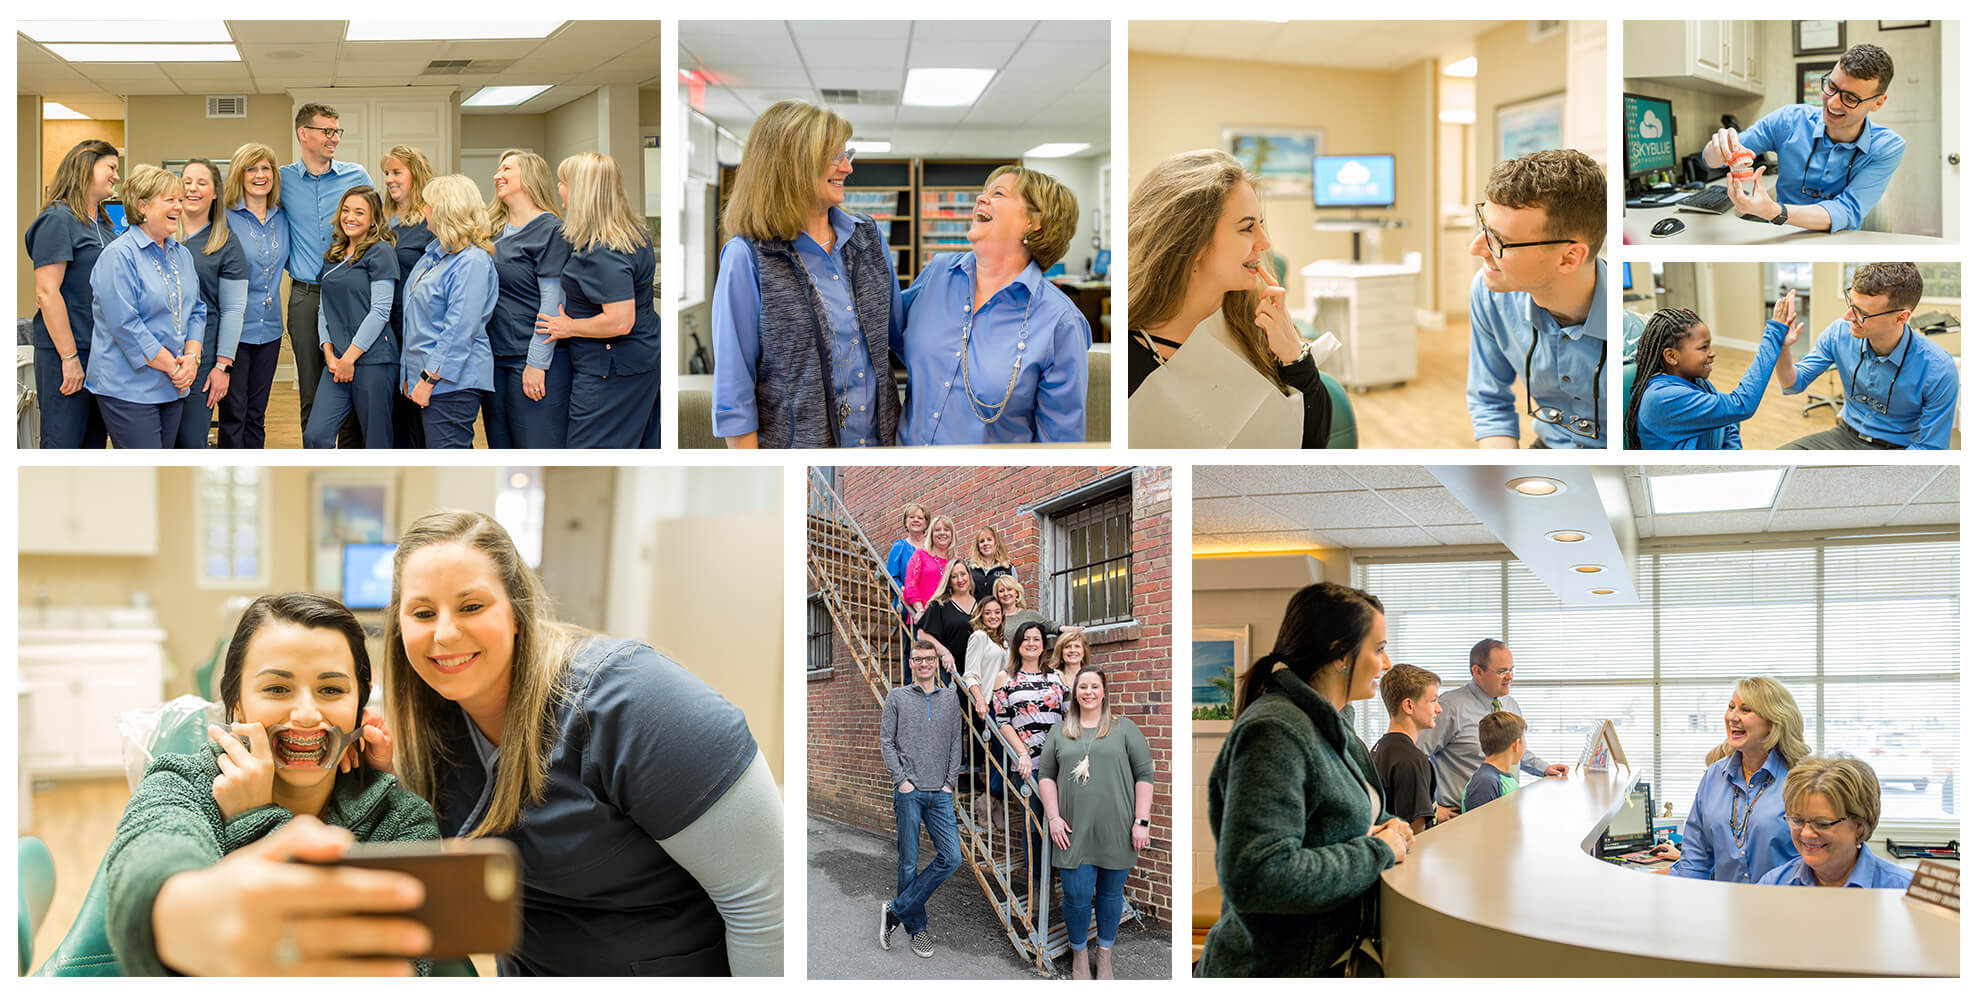 Collage of the Skyblue Orthodontics team with their patients